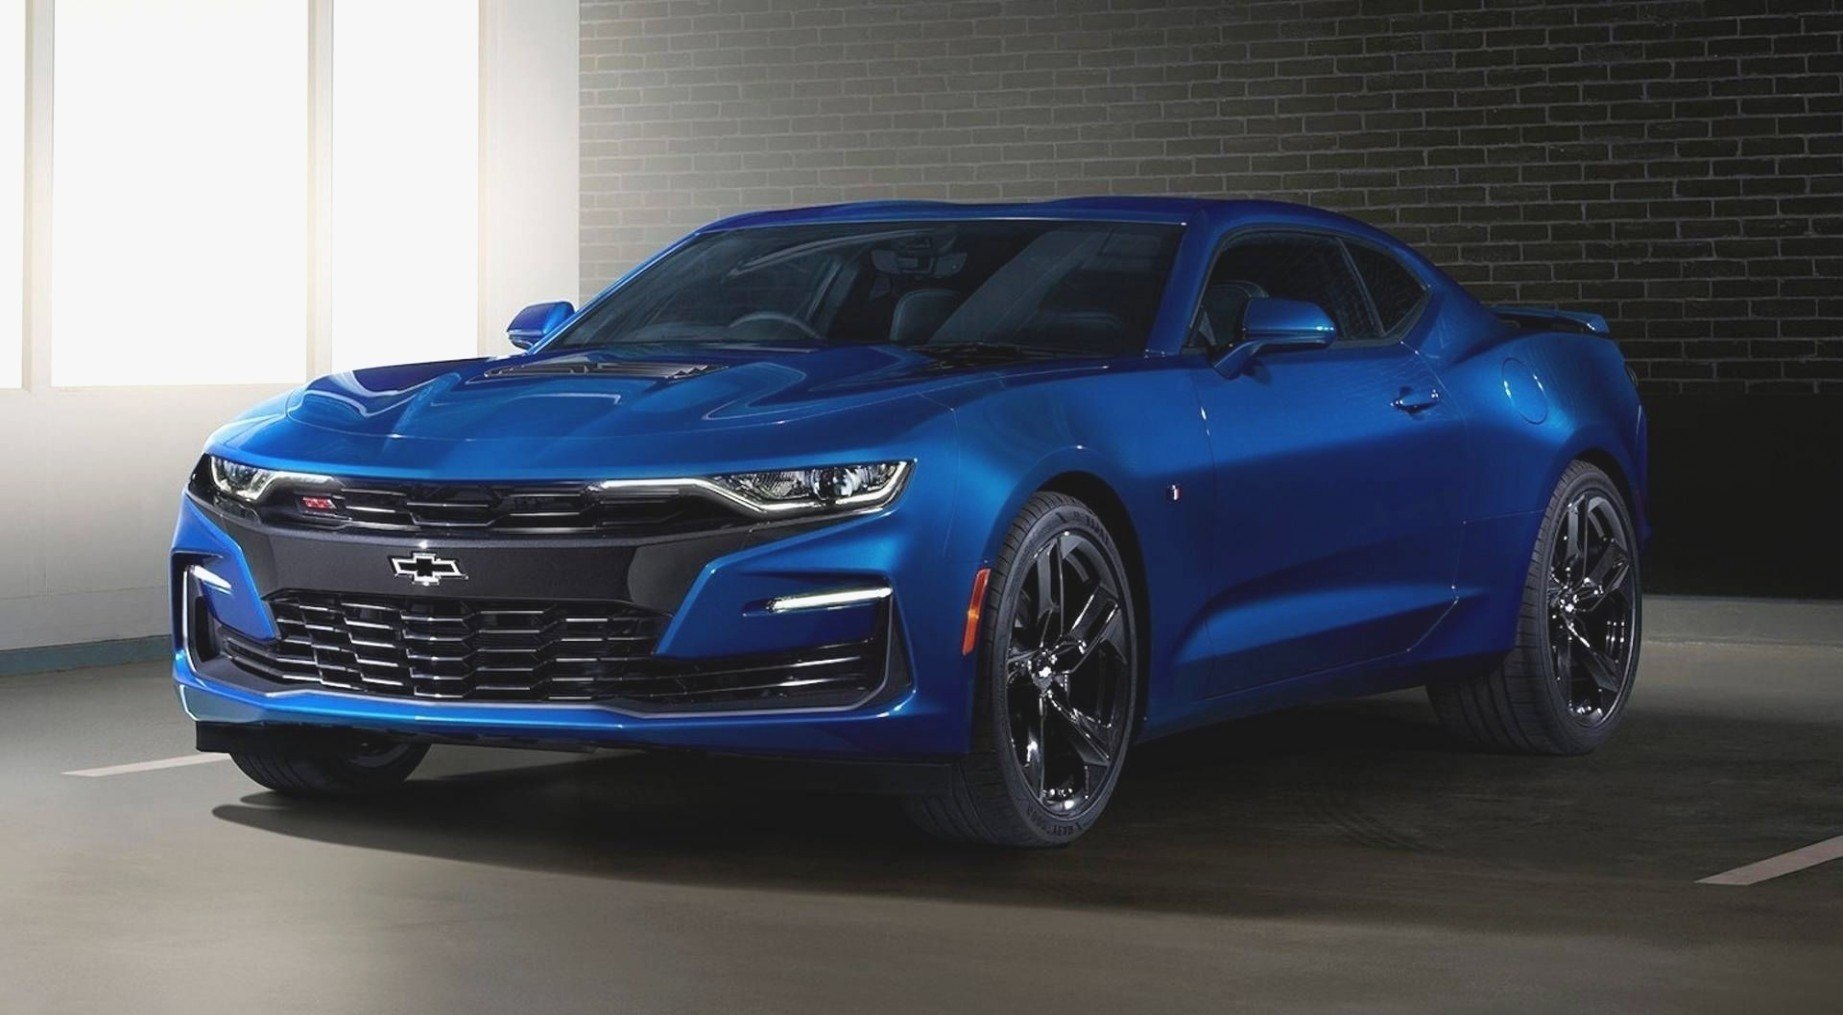 34 The 2020 Chevy Chevelle SS Wallpaper